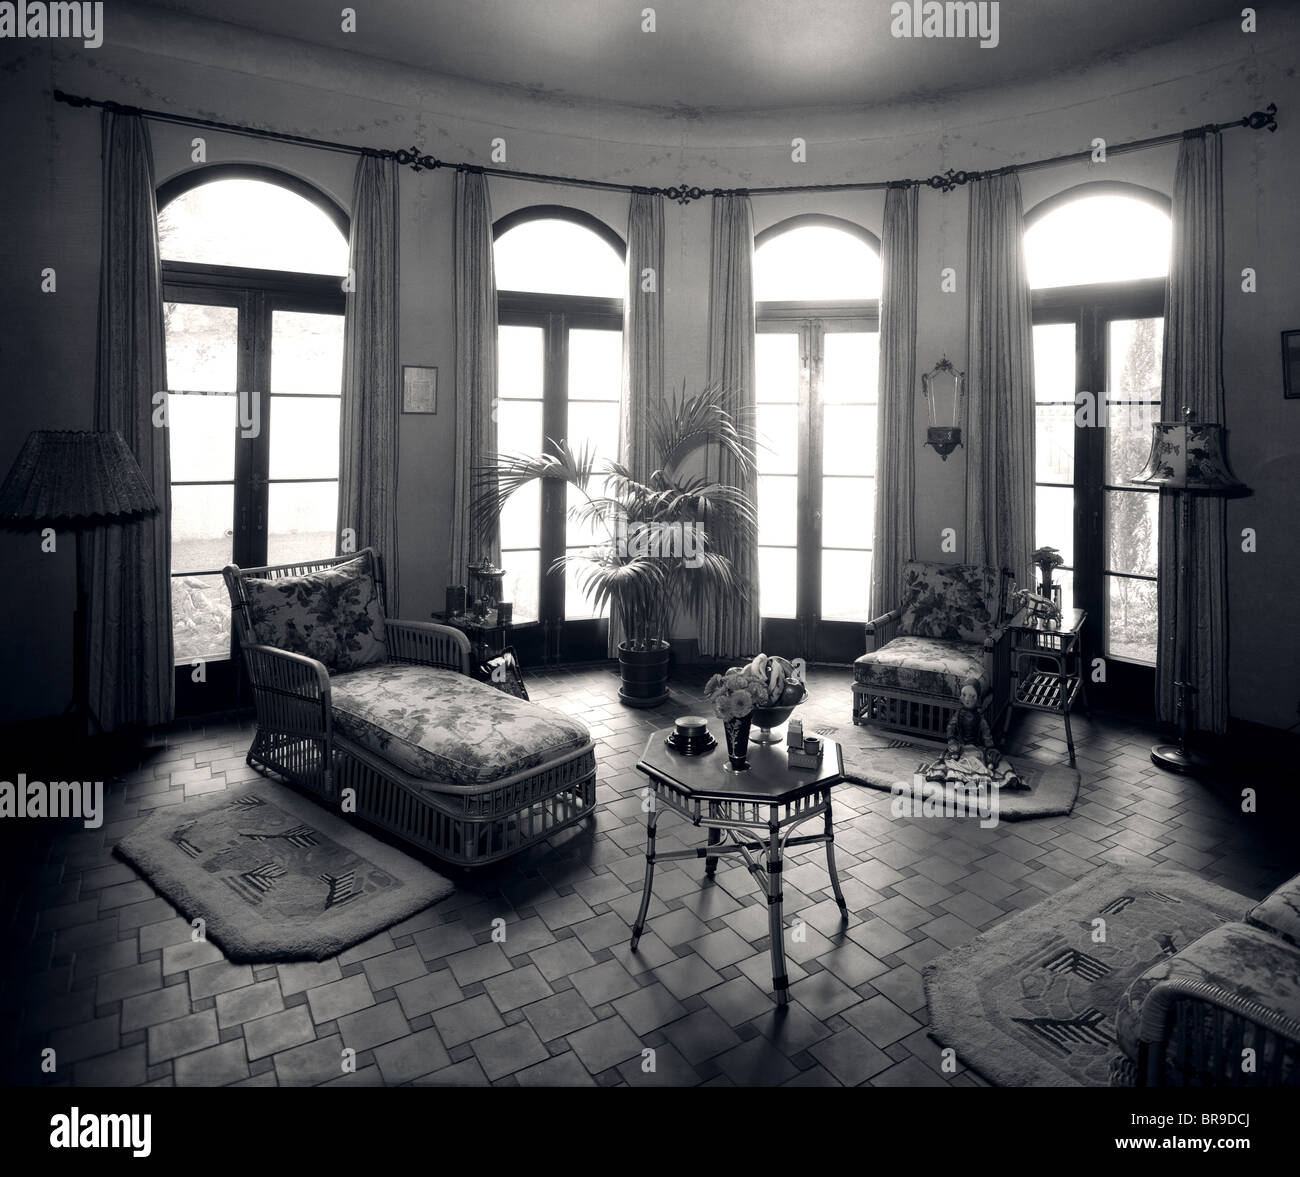 1920s interior upscale solarium french door windows stock image